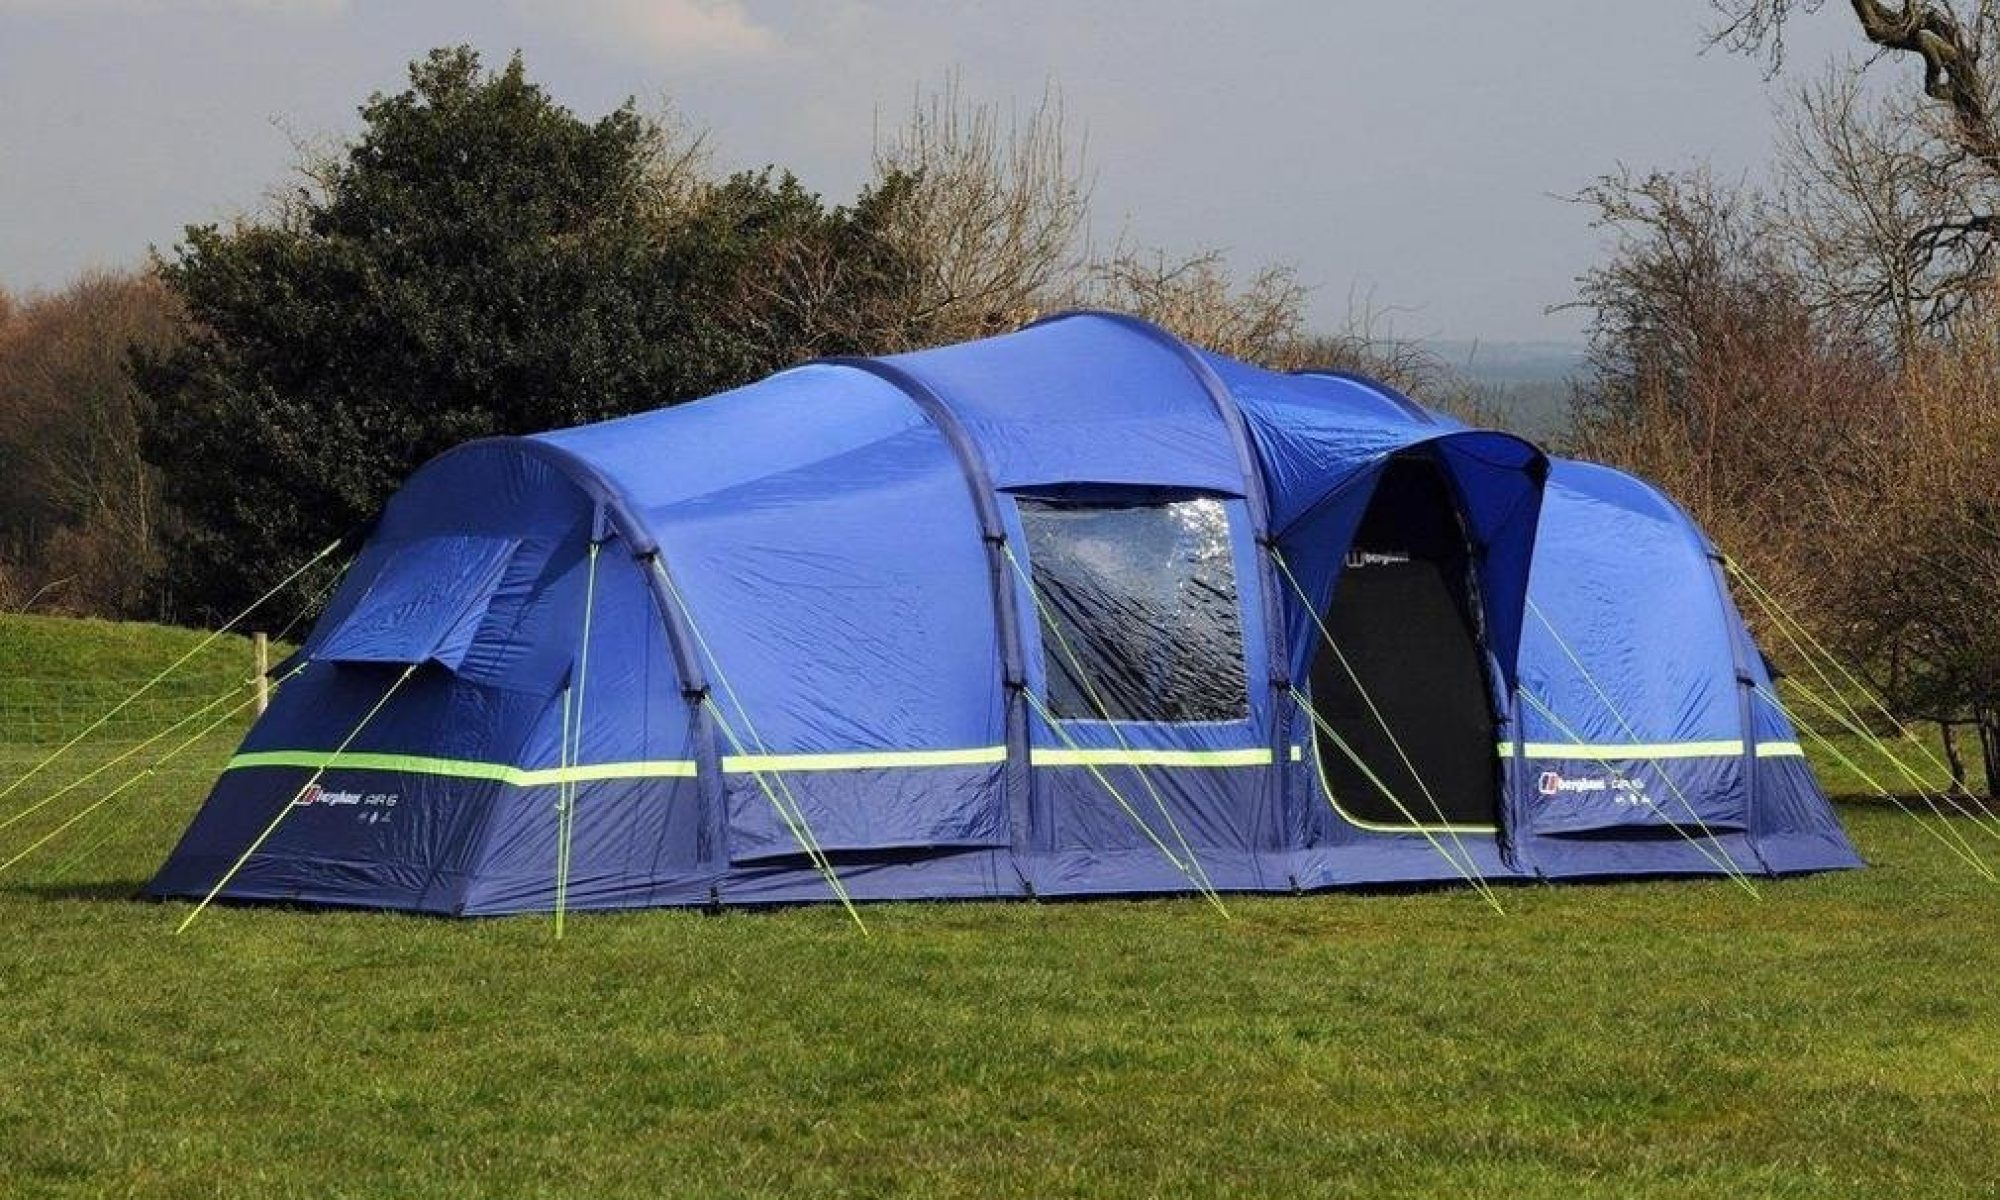 Best Air tents & Best Air tents - The Berghaus Air 6 Reviewed